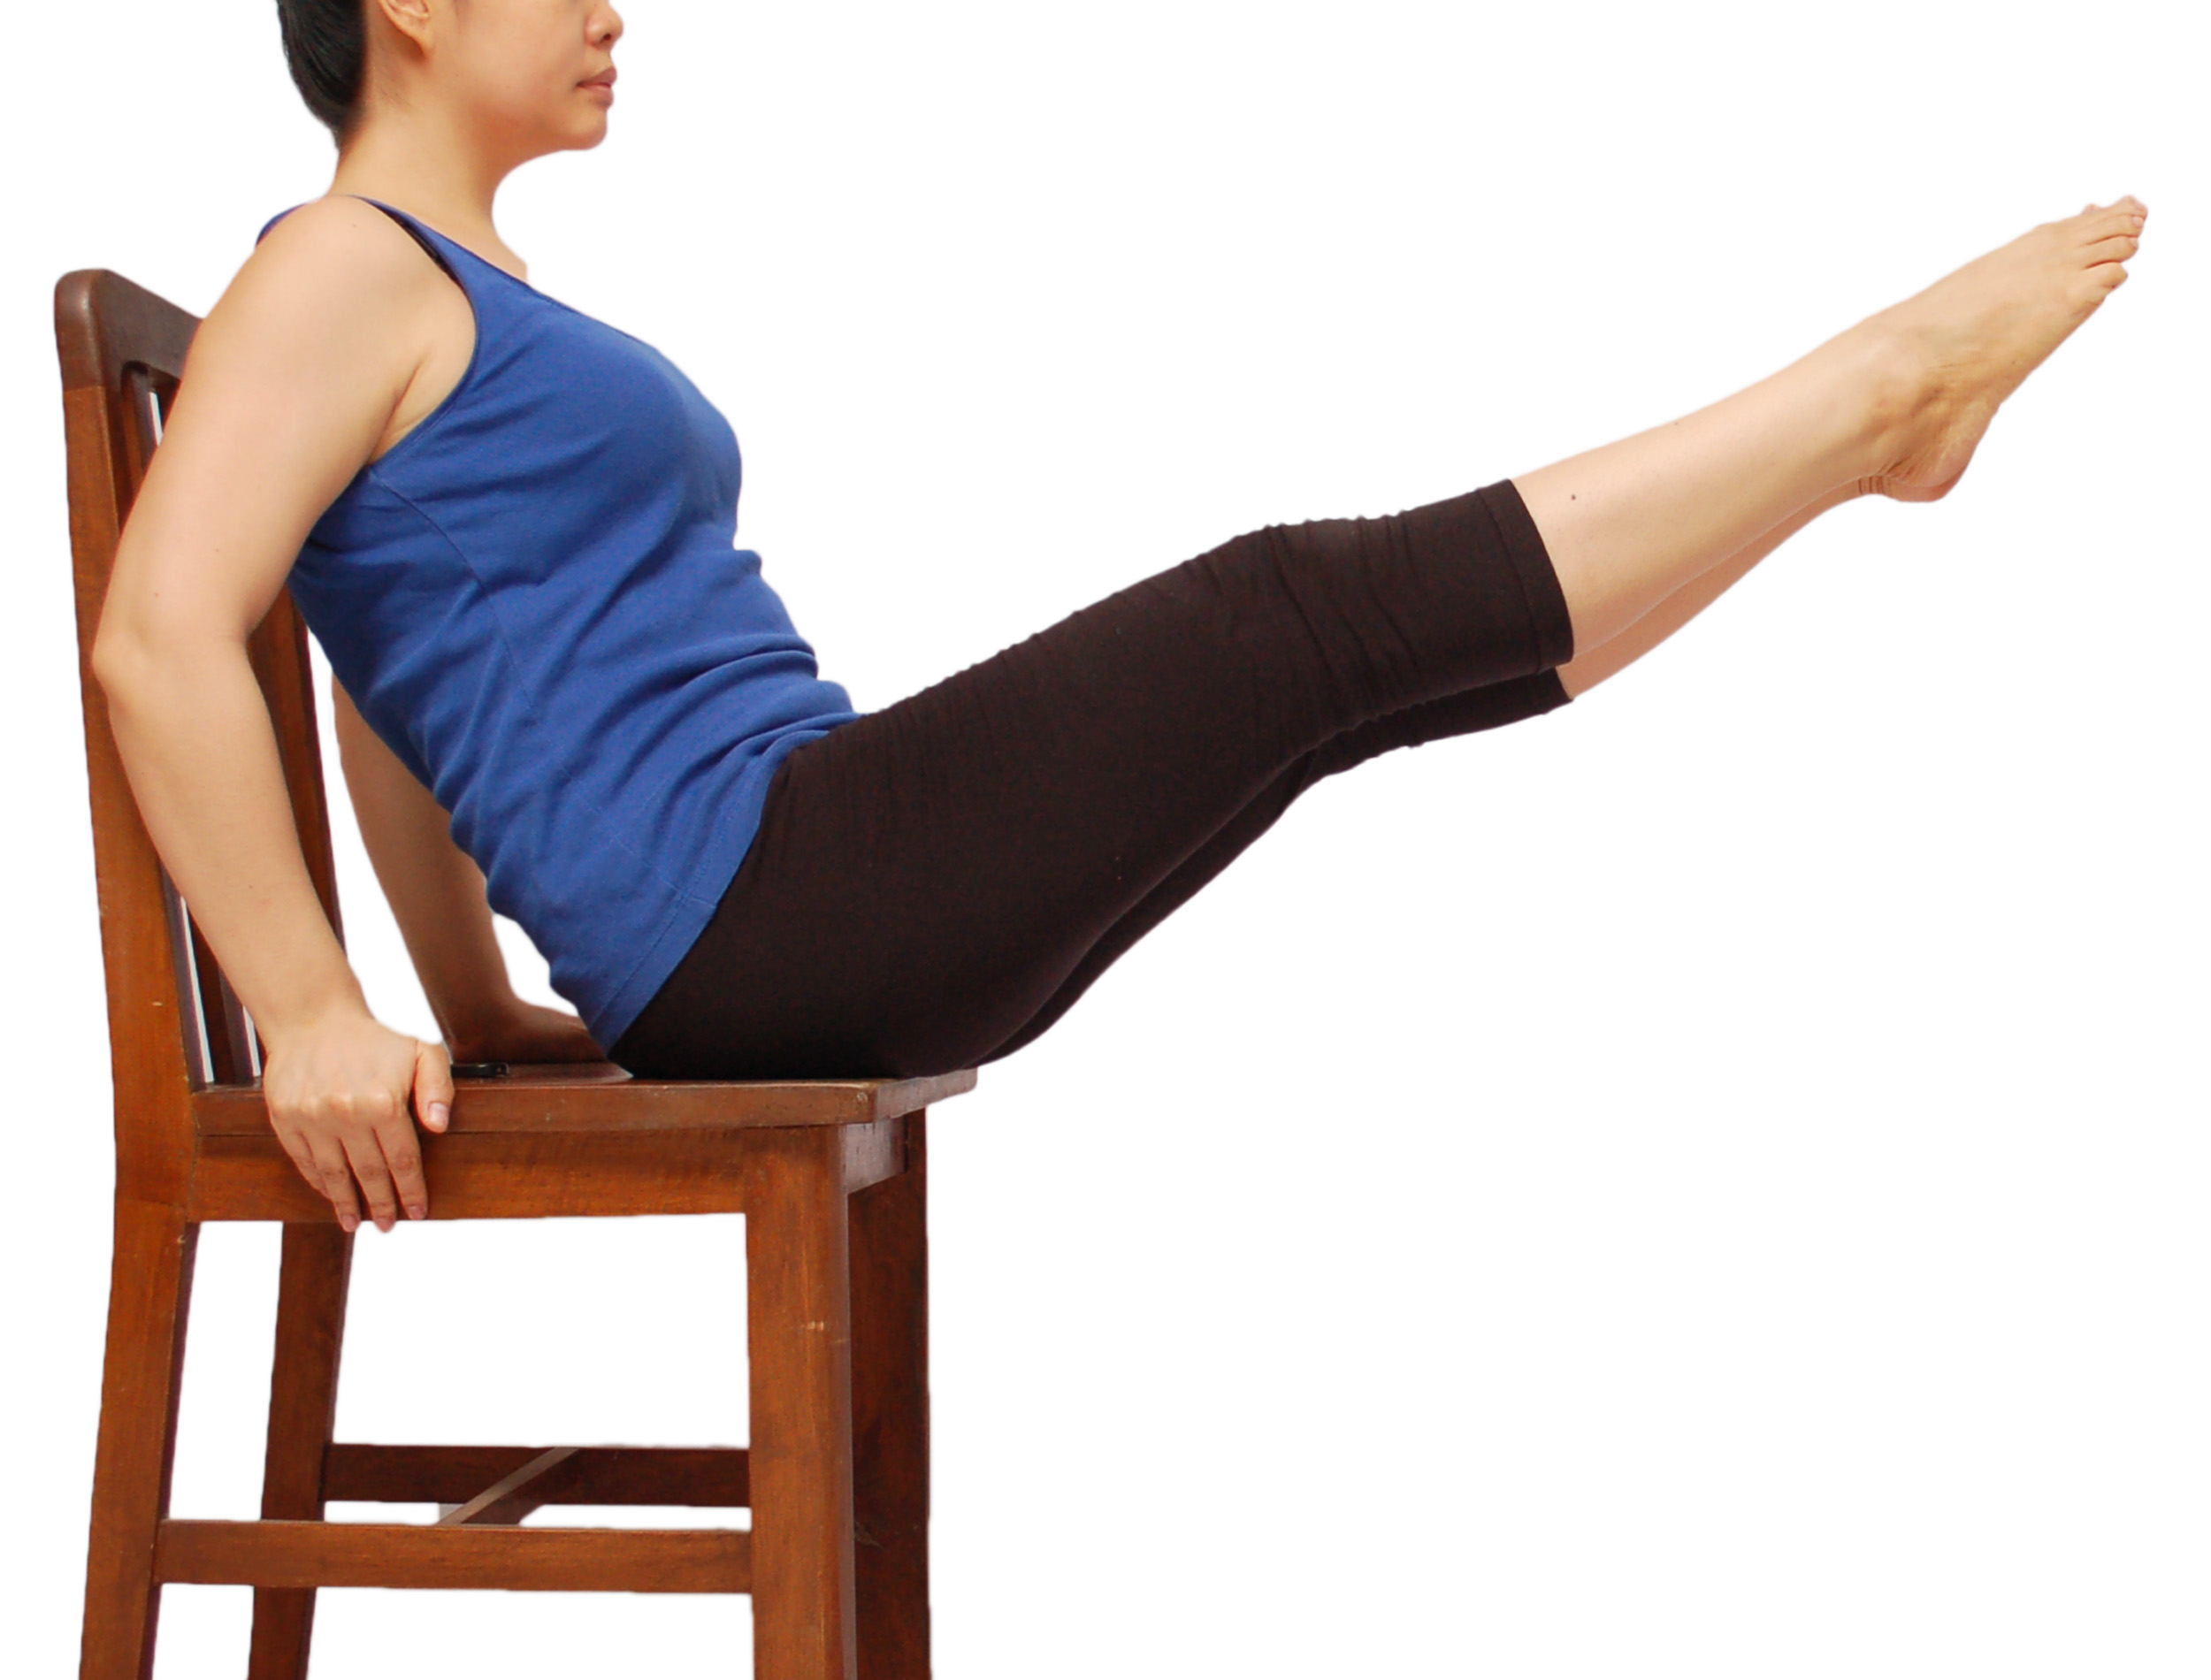 chair exercises for abs used wheelchair van 5 ways to do an workout in a wikihow